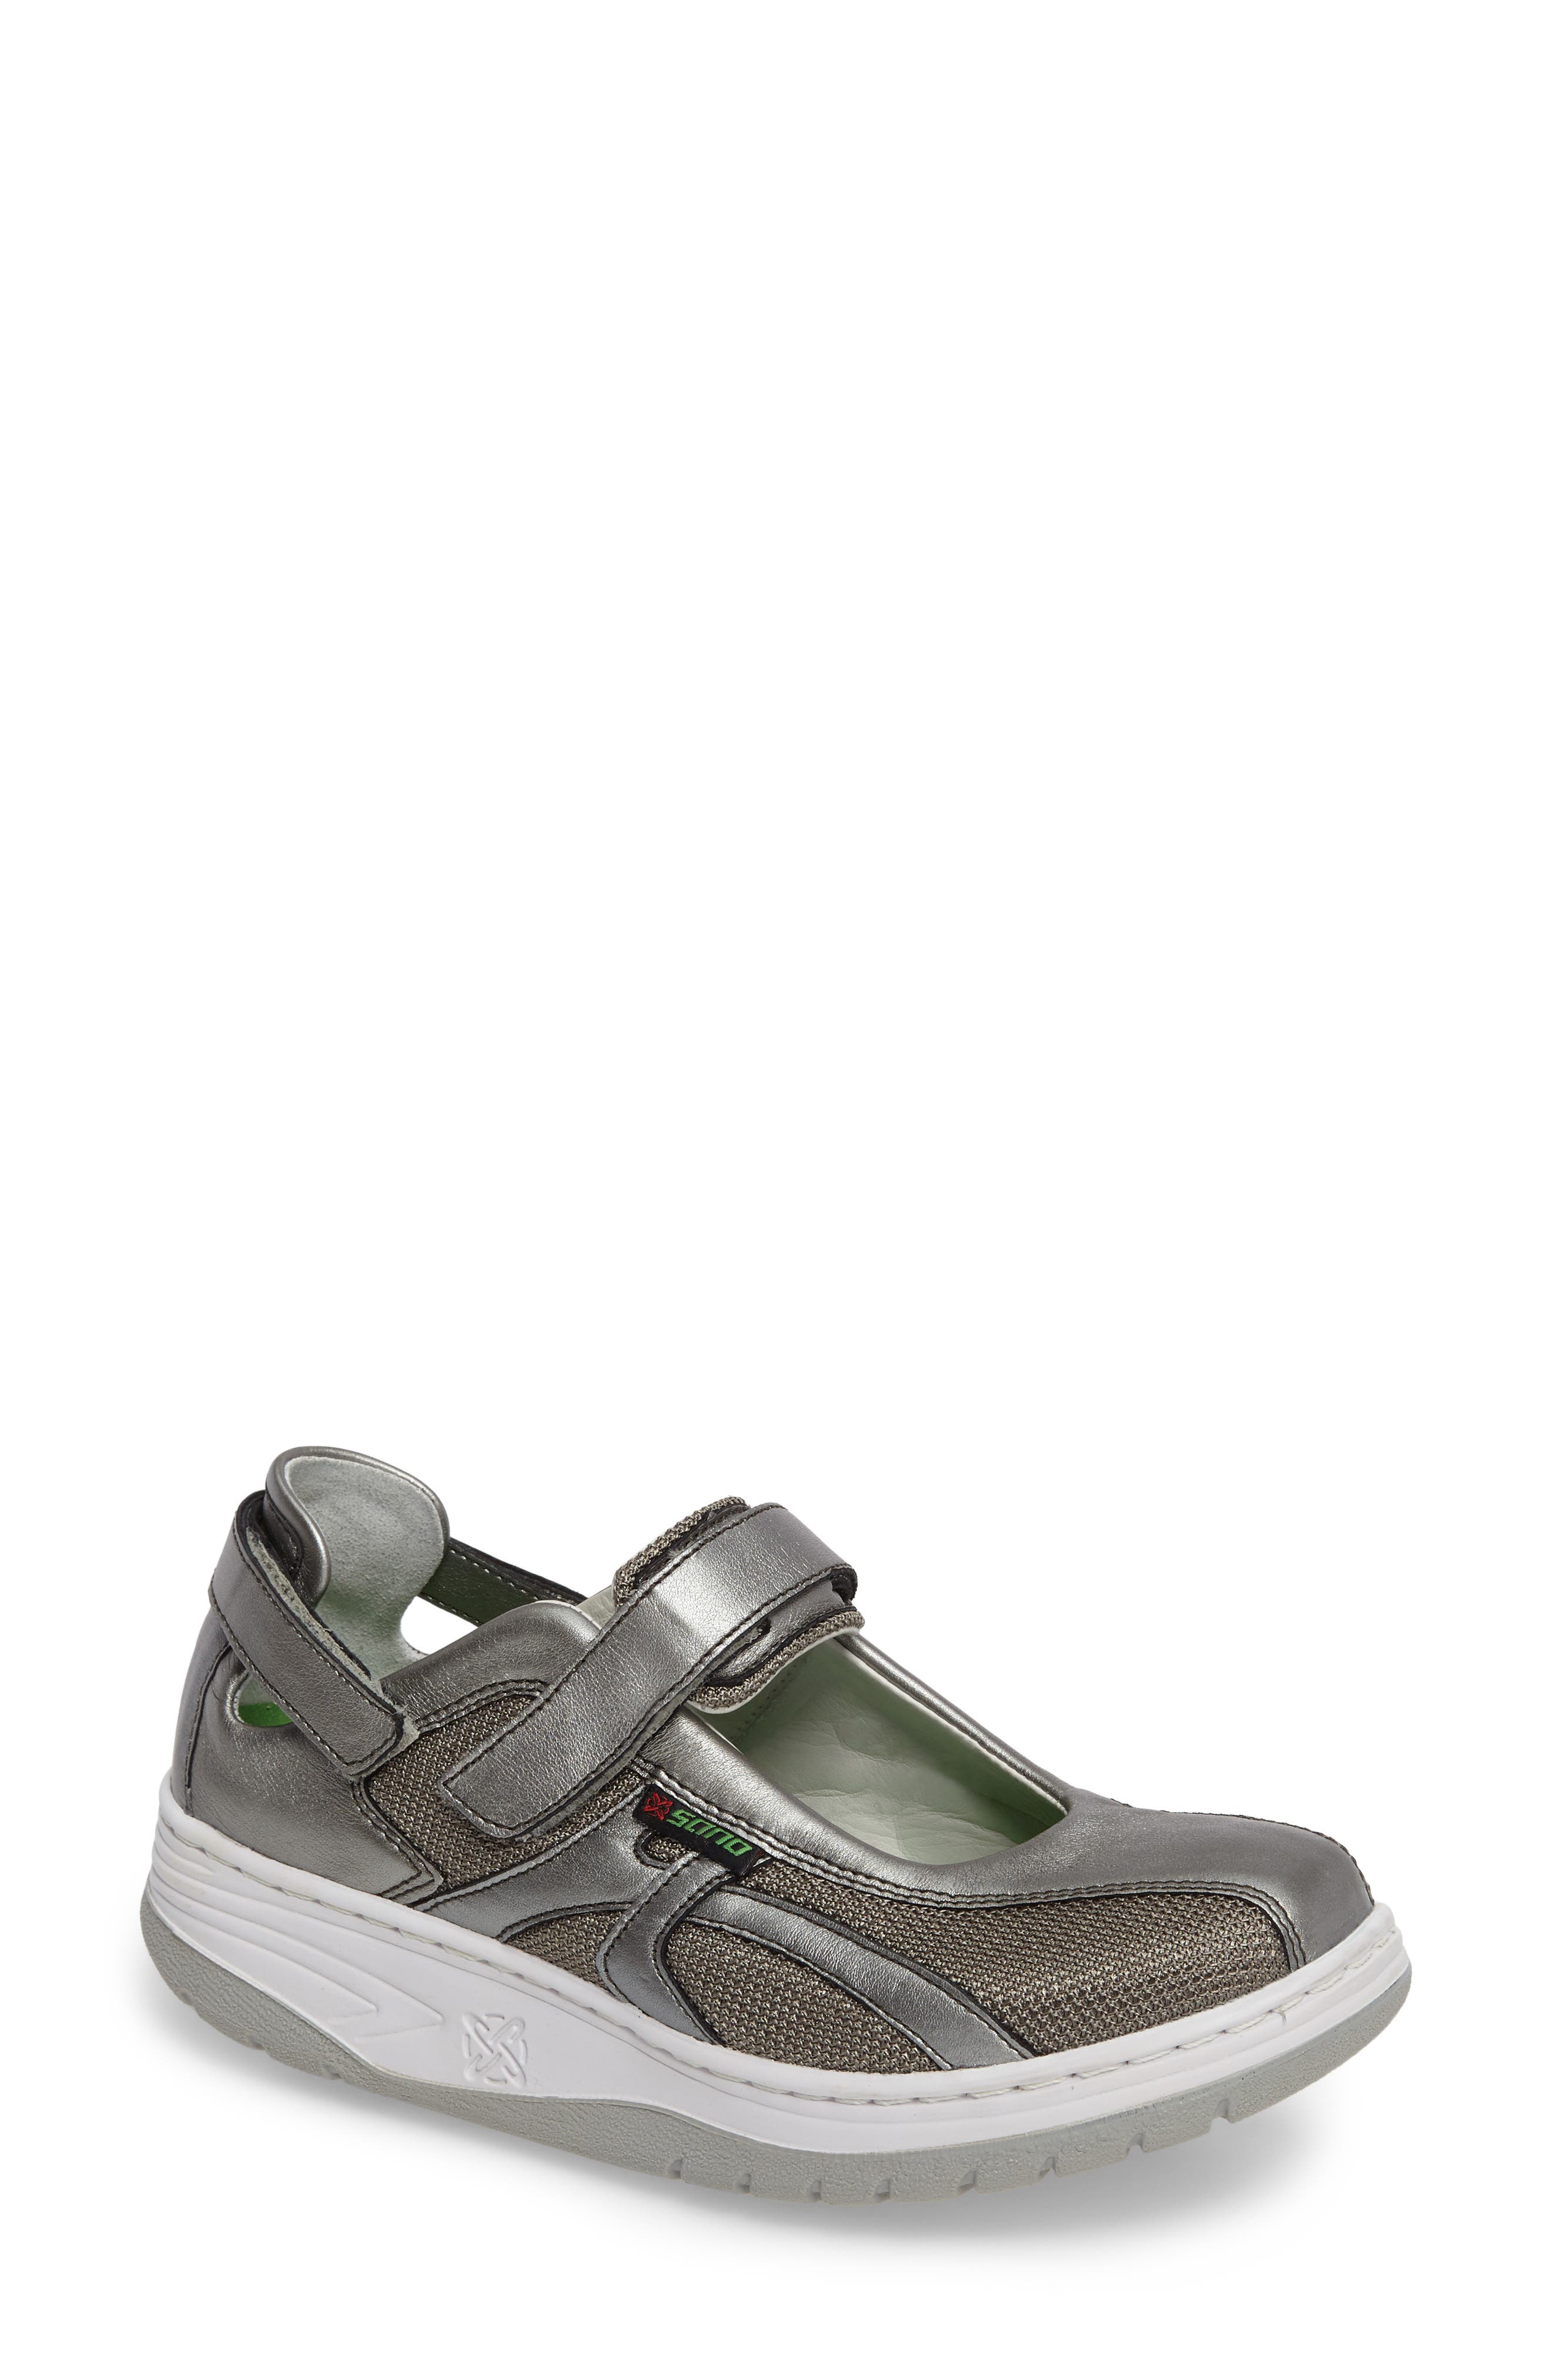 Sano by Mephisto 'Excess' Walking Shoe,                         Main,                         color, 074